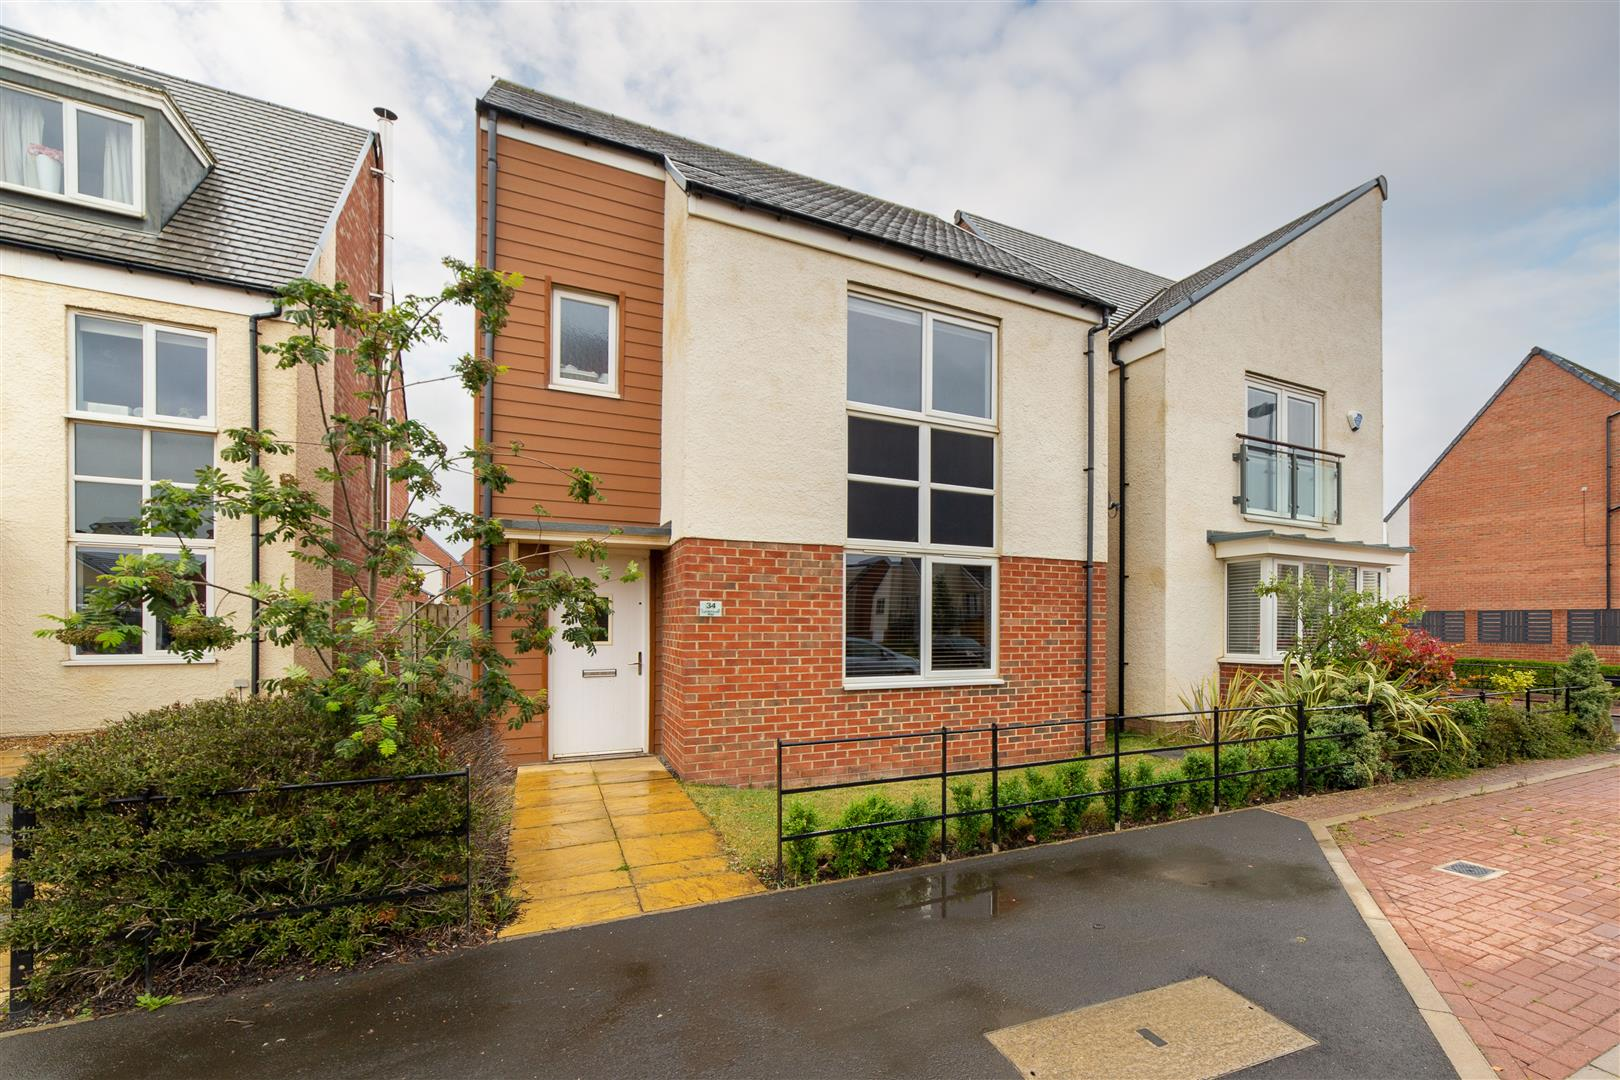 3 bed detached house for sale in Lynemouth Way, Newcastle Upon Tyne, NE13